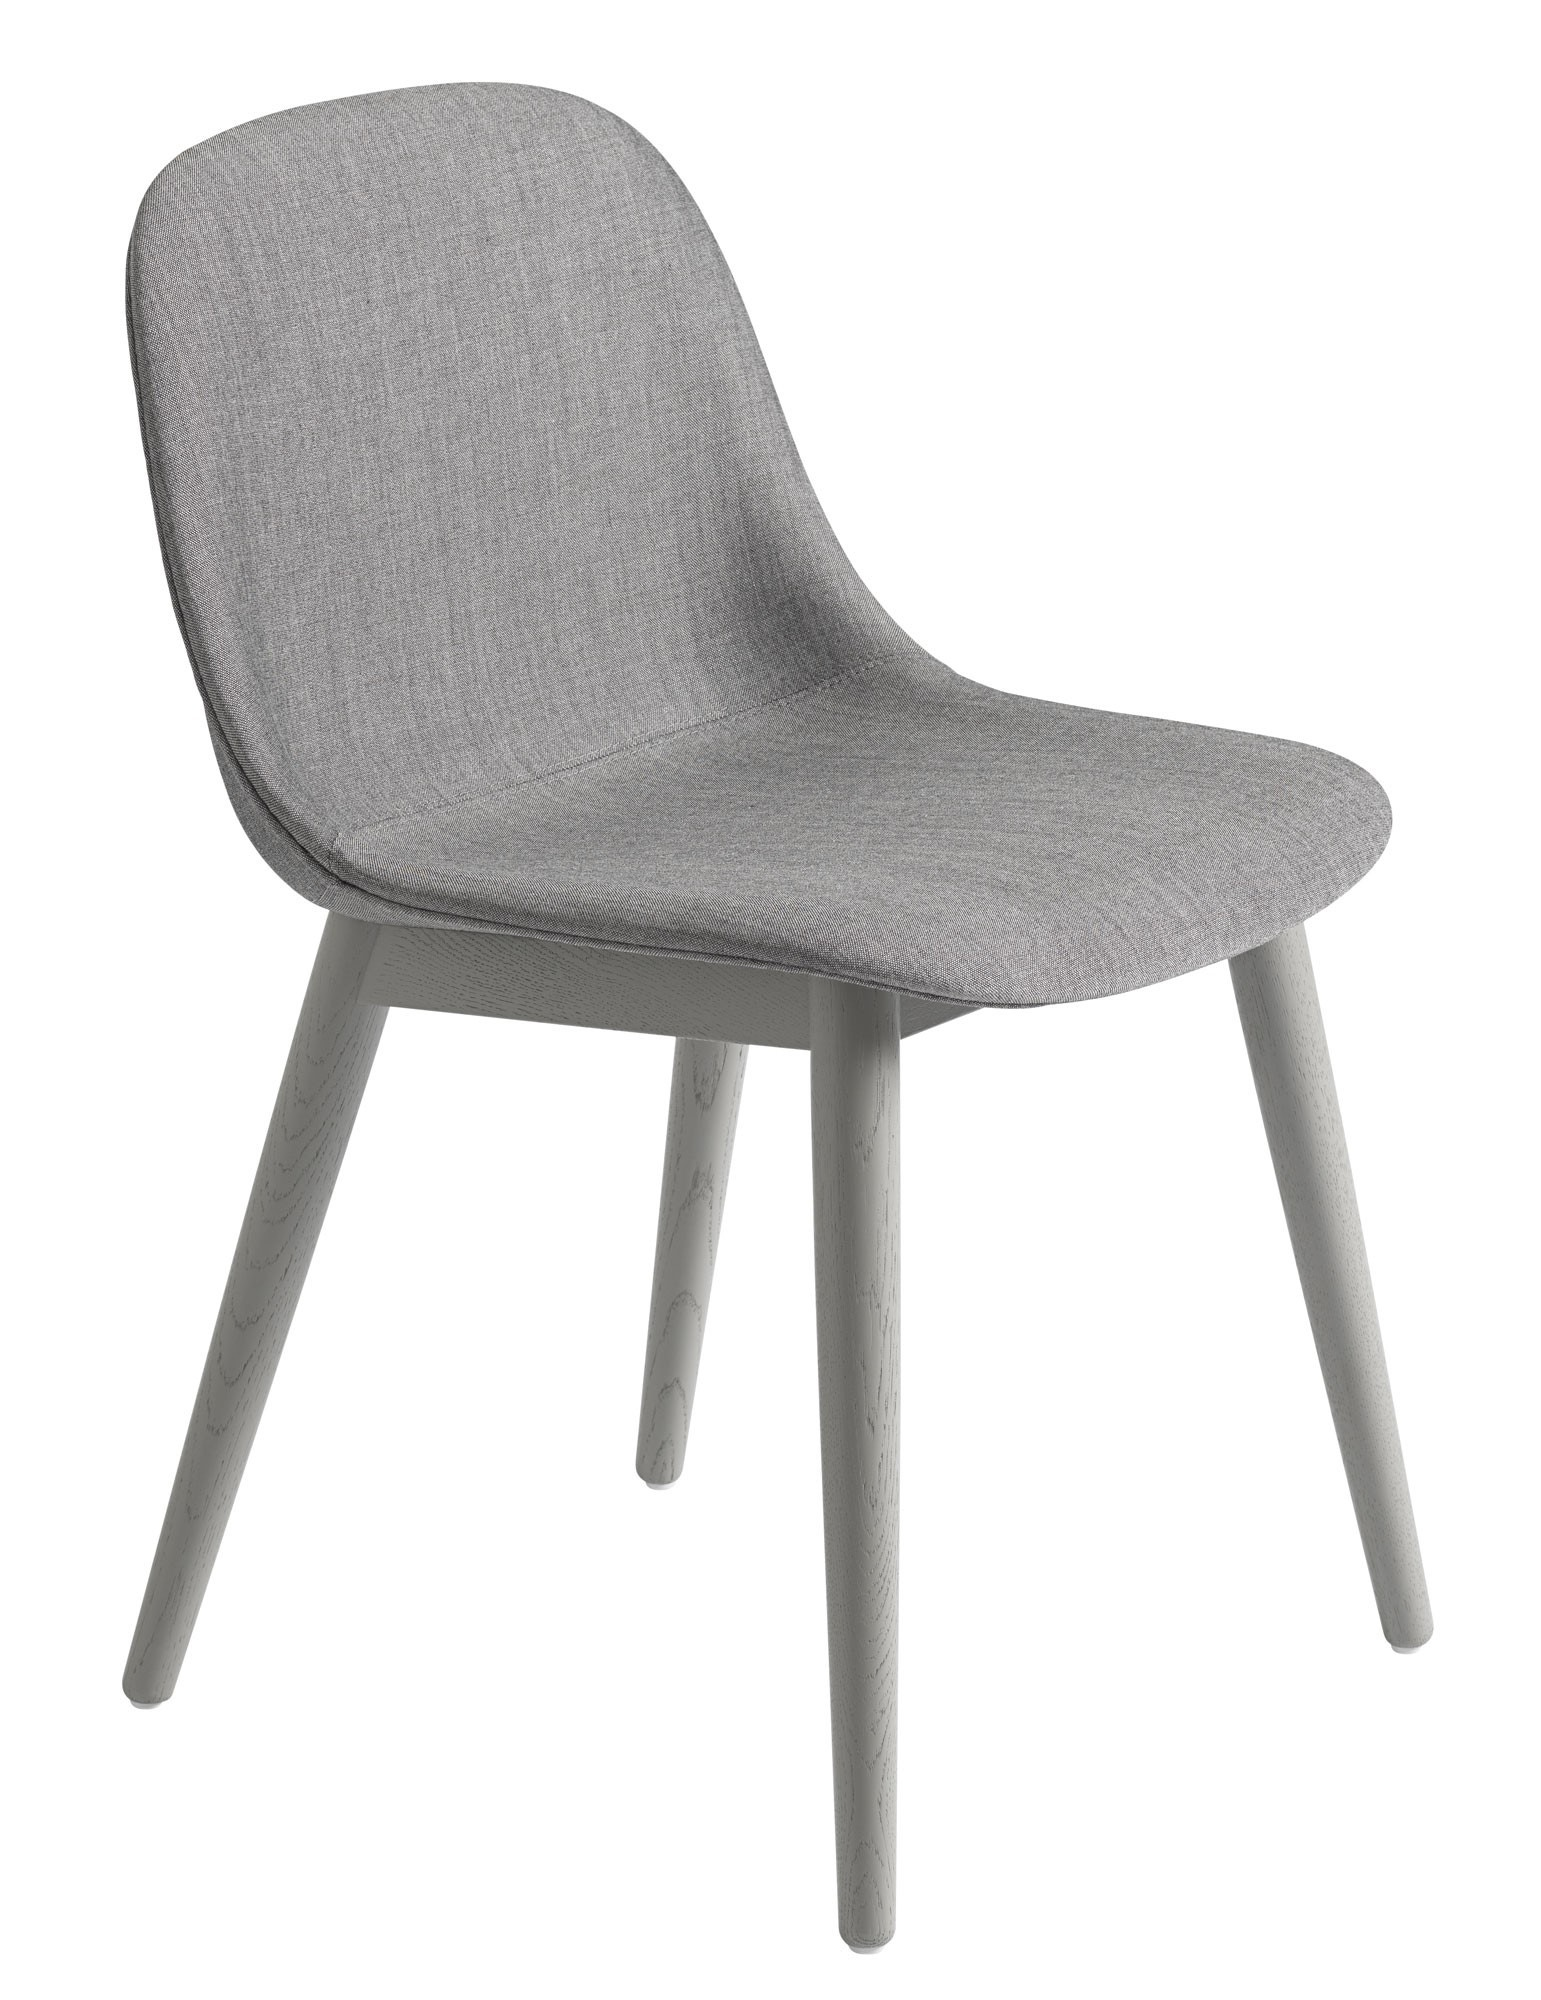 Muuto Wood Base Upholstered Fiber Side Chair GR Shop Canada